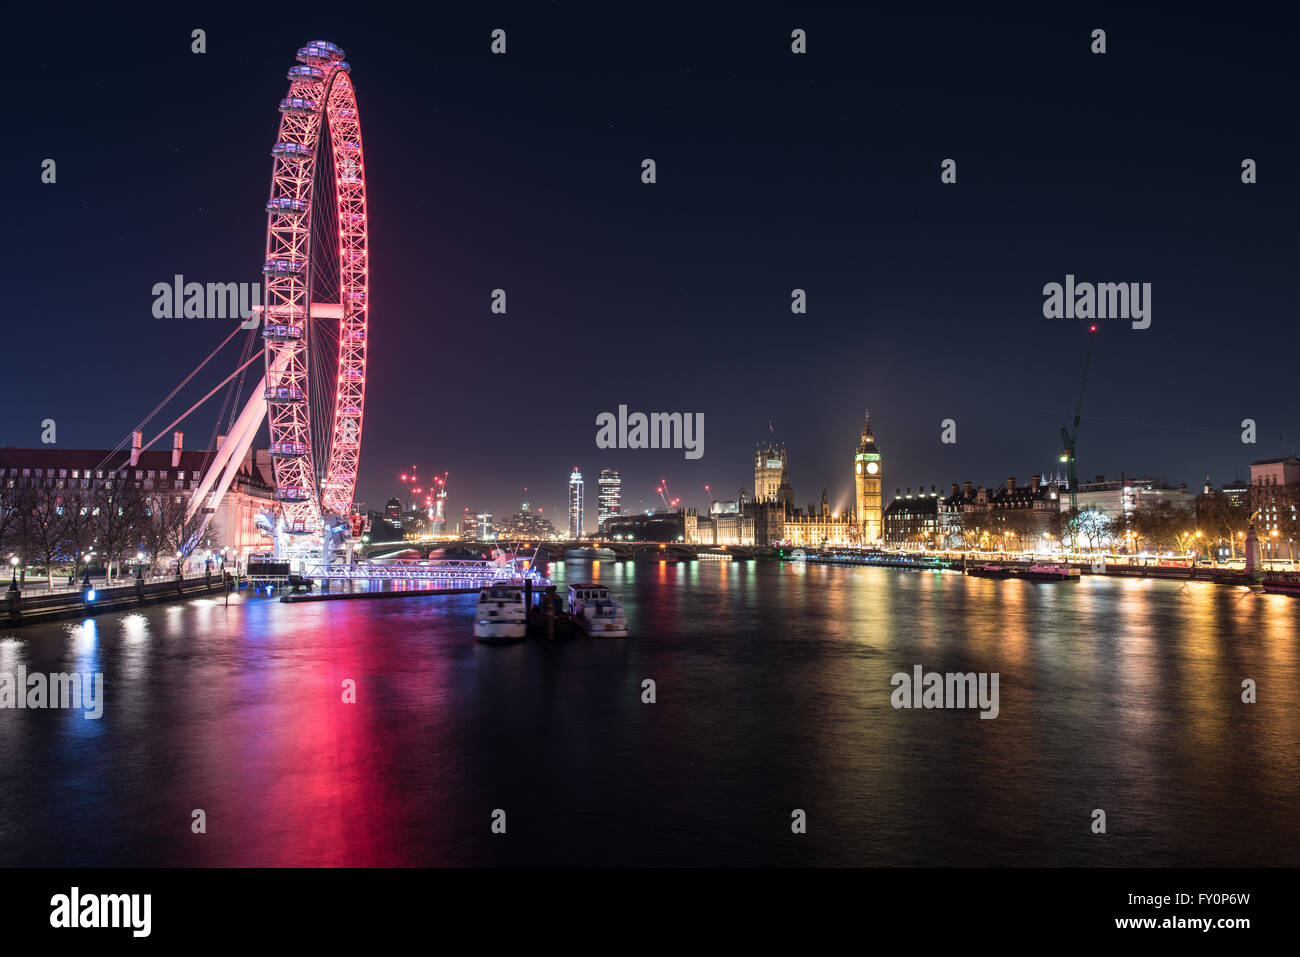 Looking south along the River Thames towards the London Eye and Houses of Parliament, London, England, United Kingdom - Stock Image